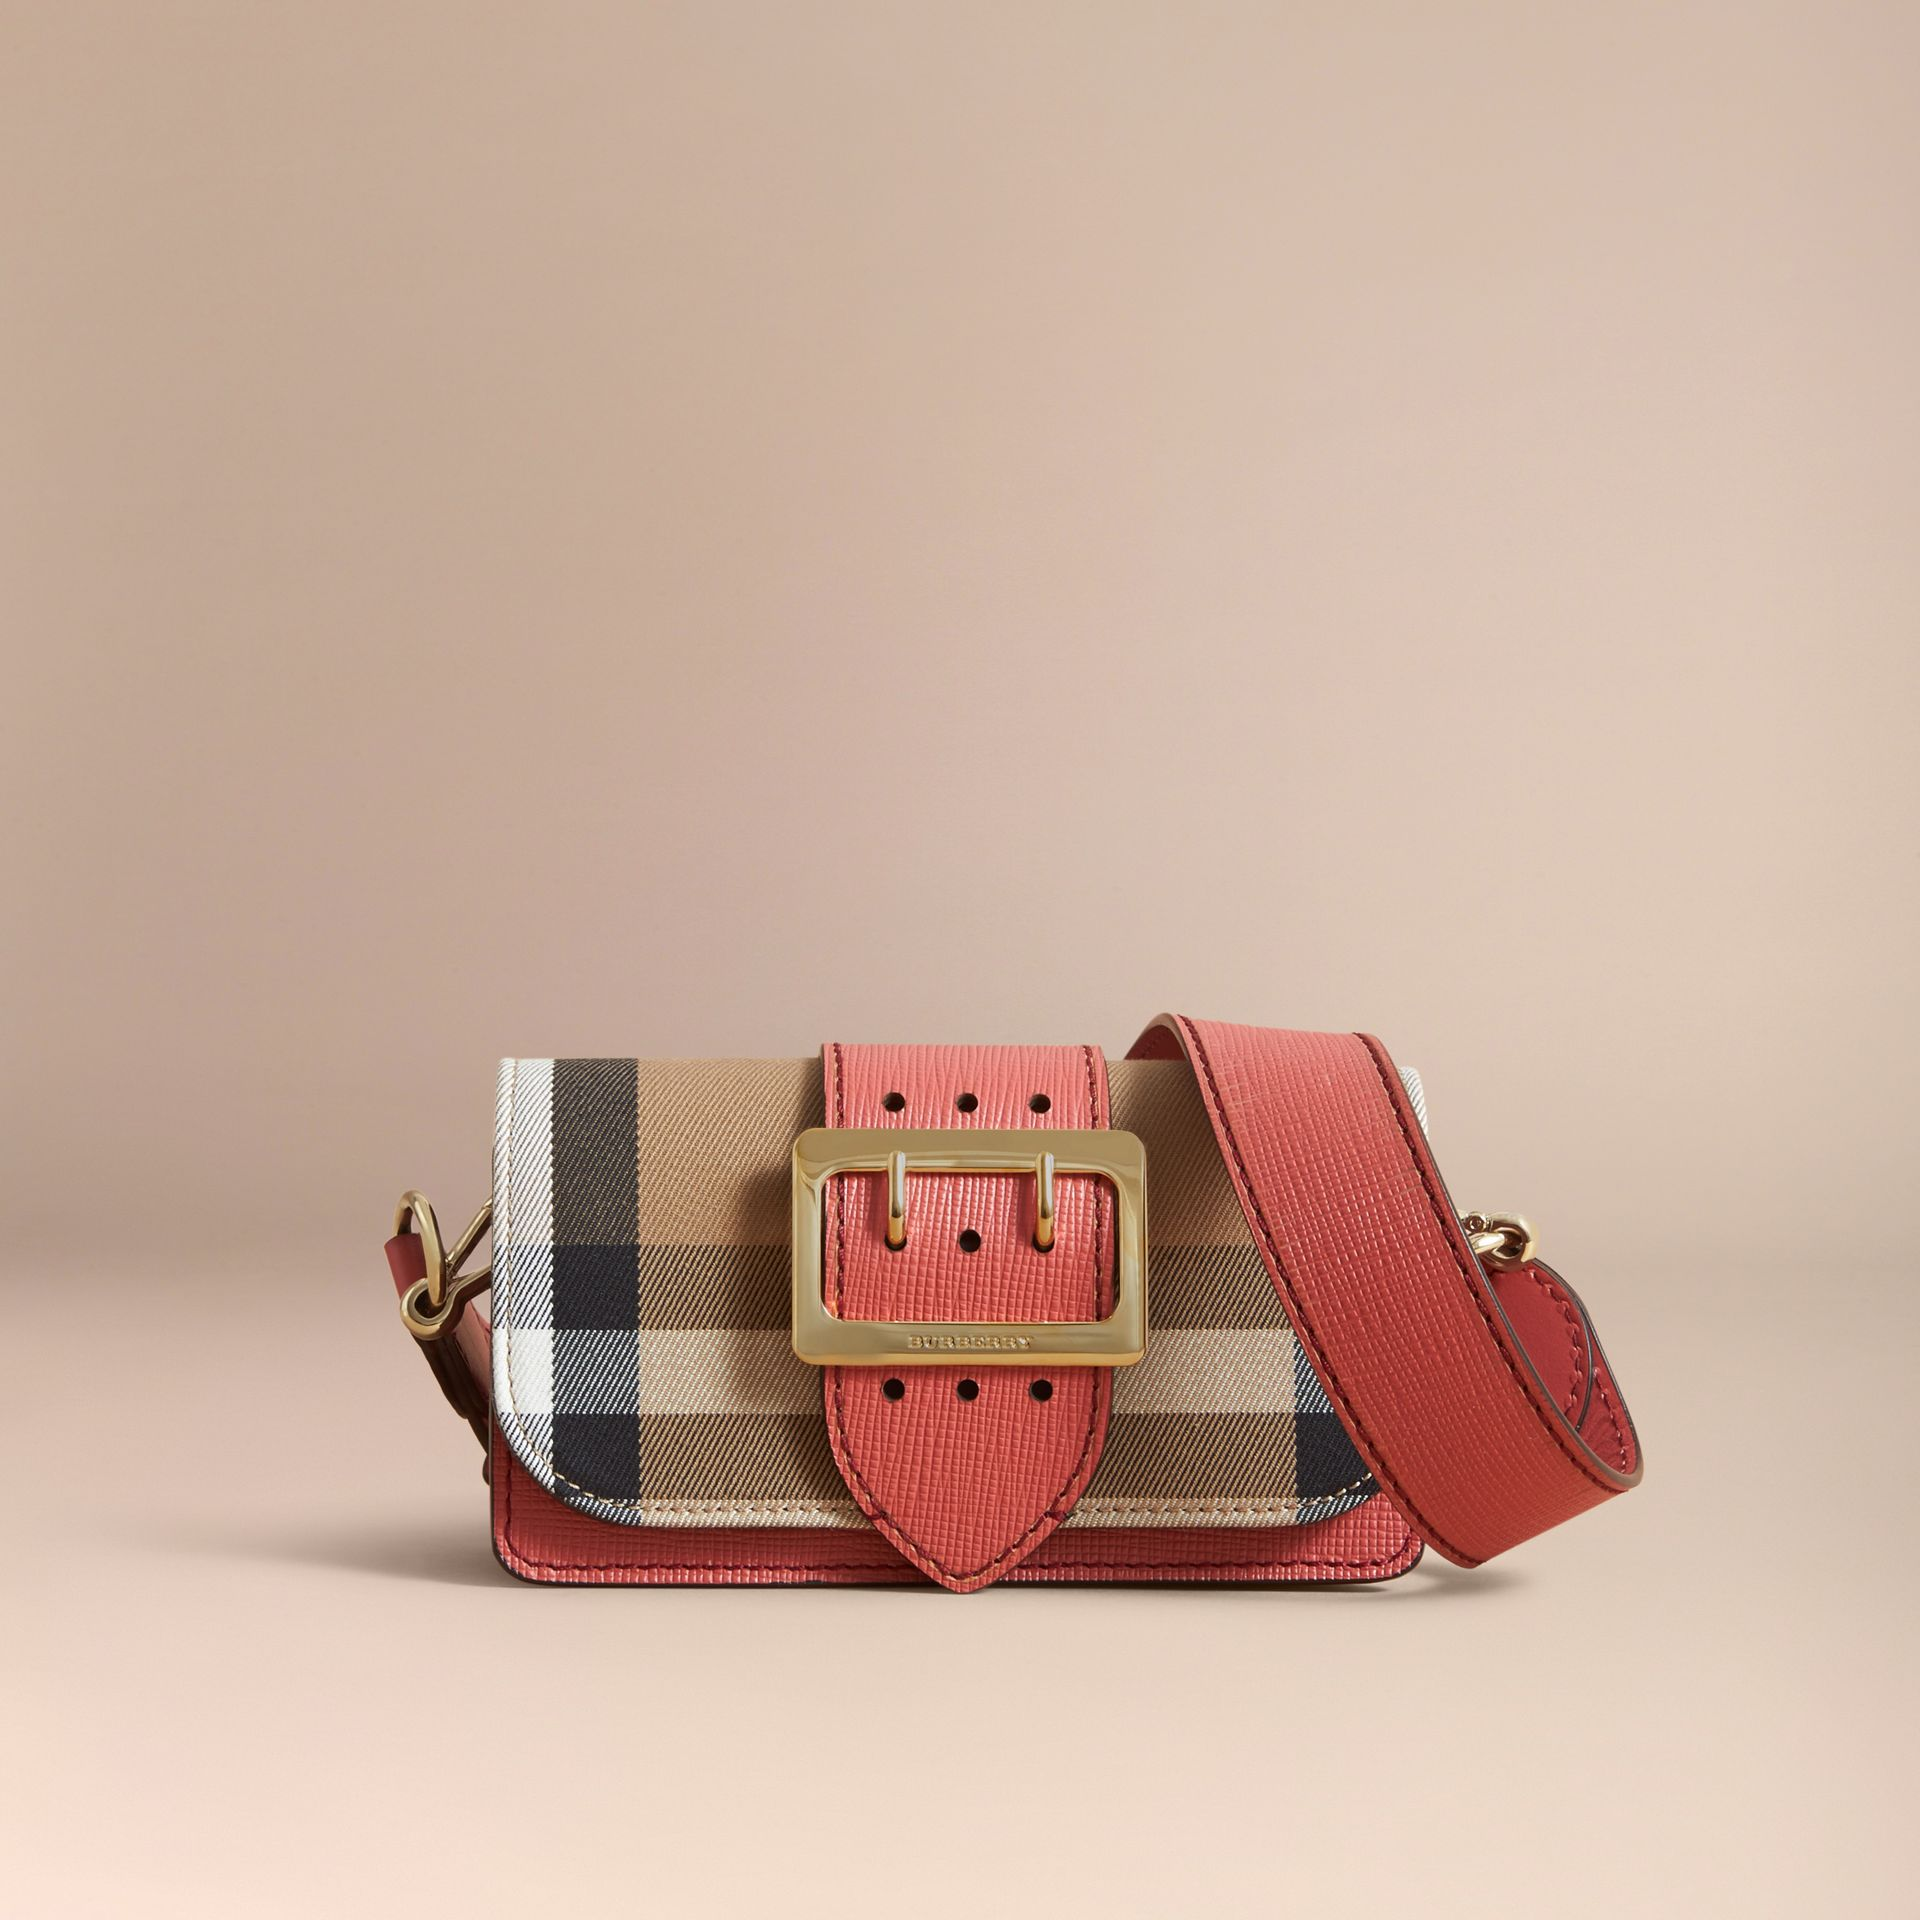 The Small Buckle Bag in House Check and Leather in Cinnamon Red - Women | Burberry Singapore - gallery image 7